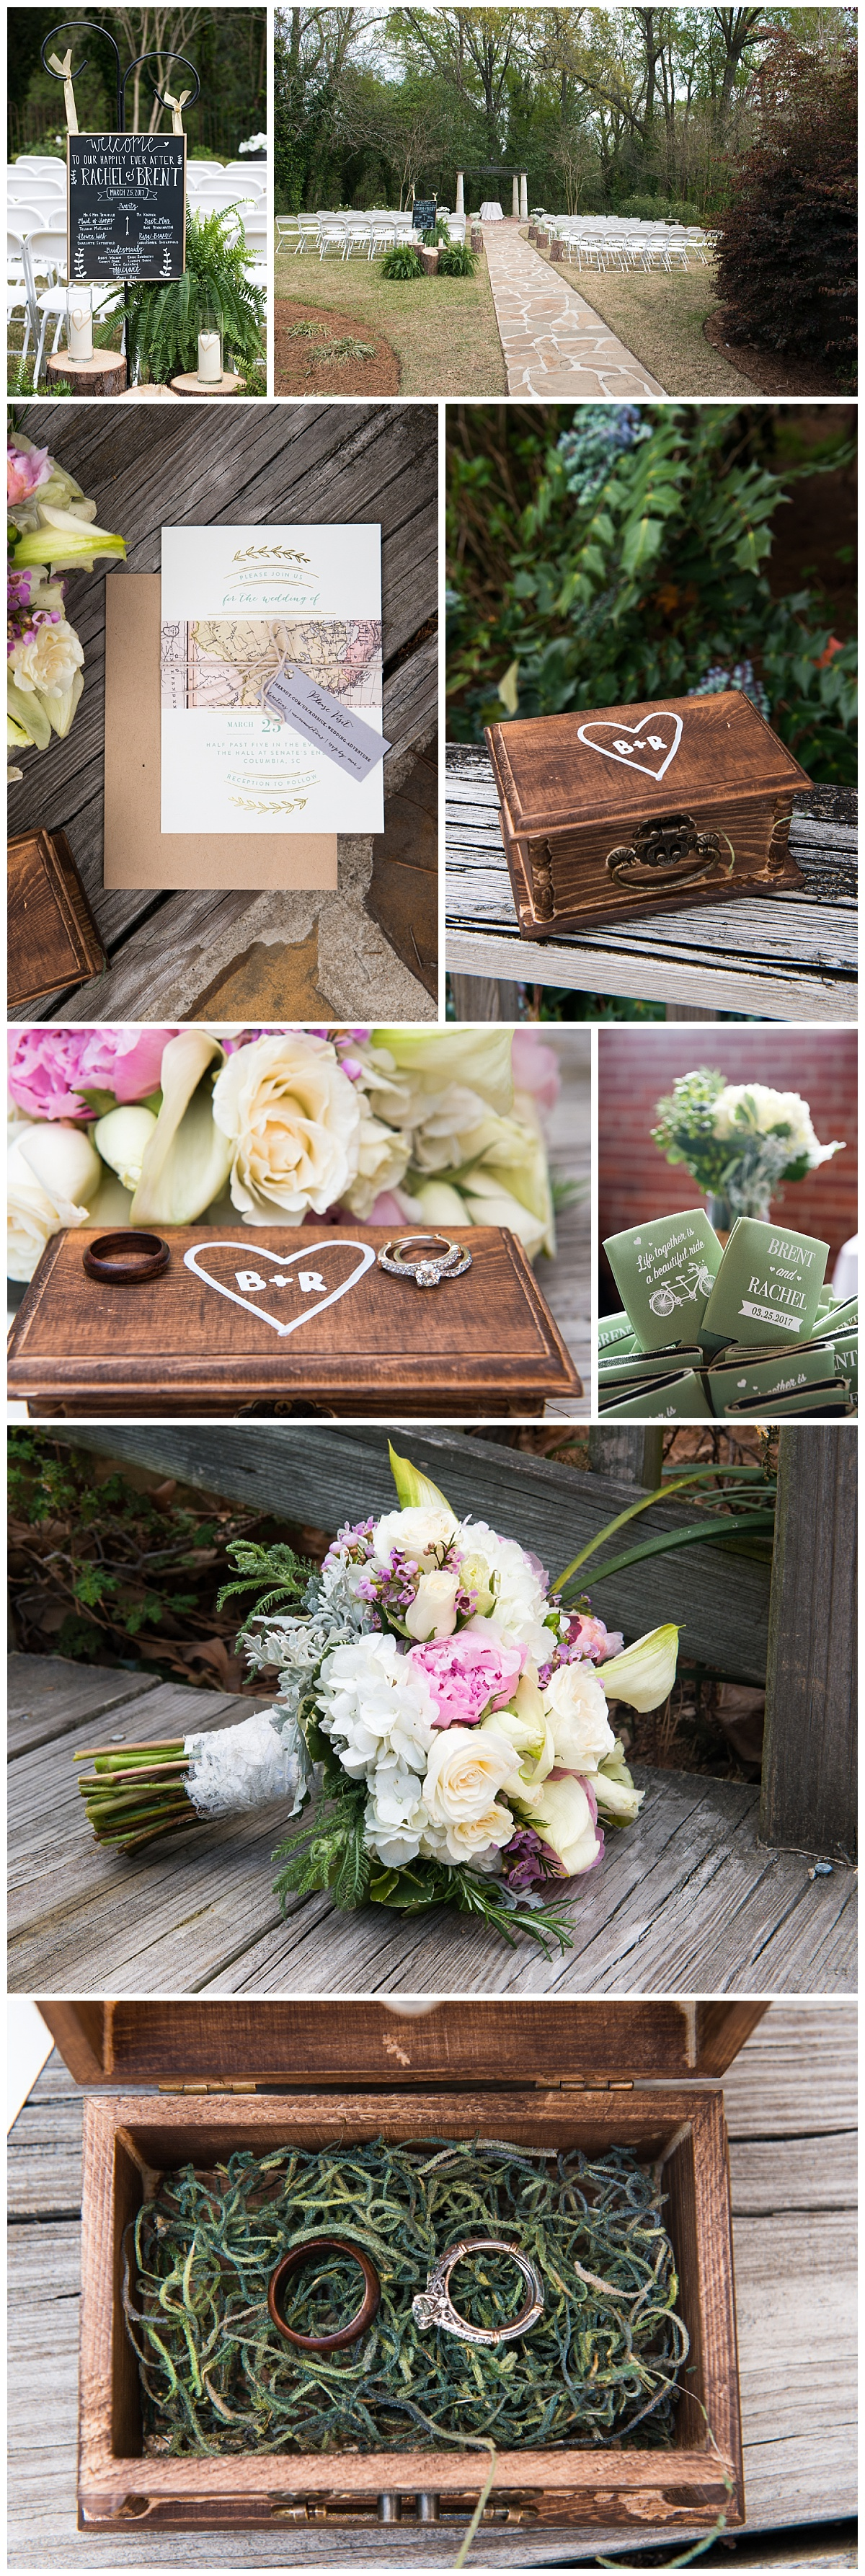 Travel wedding theme invitation and details at Senate's End with wooden ring box